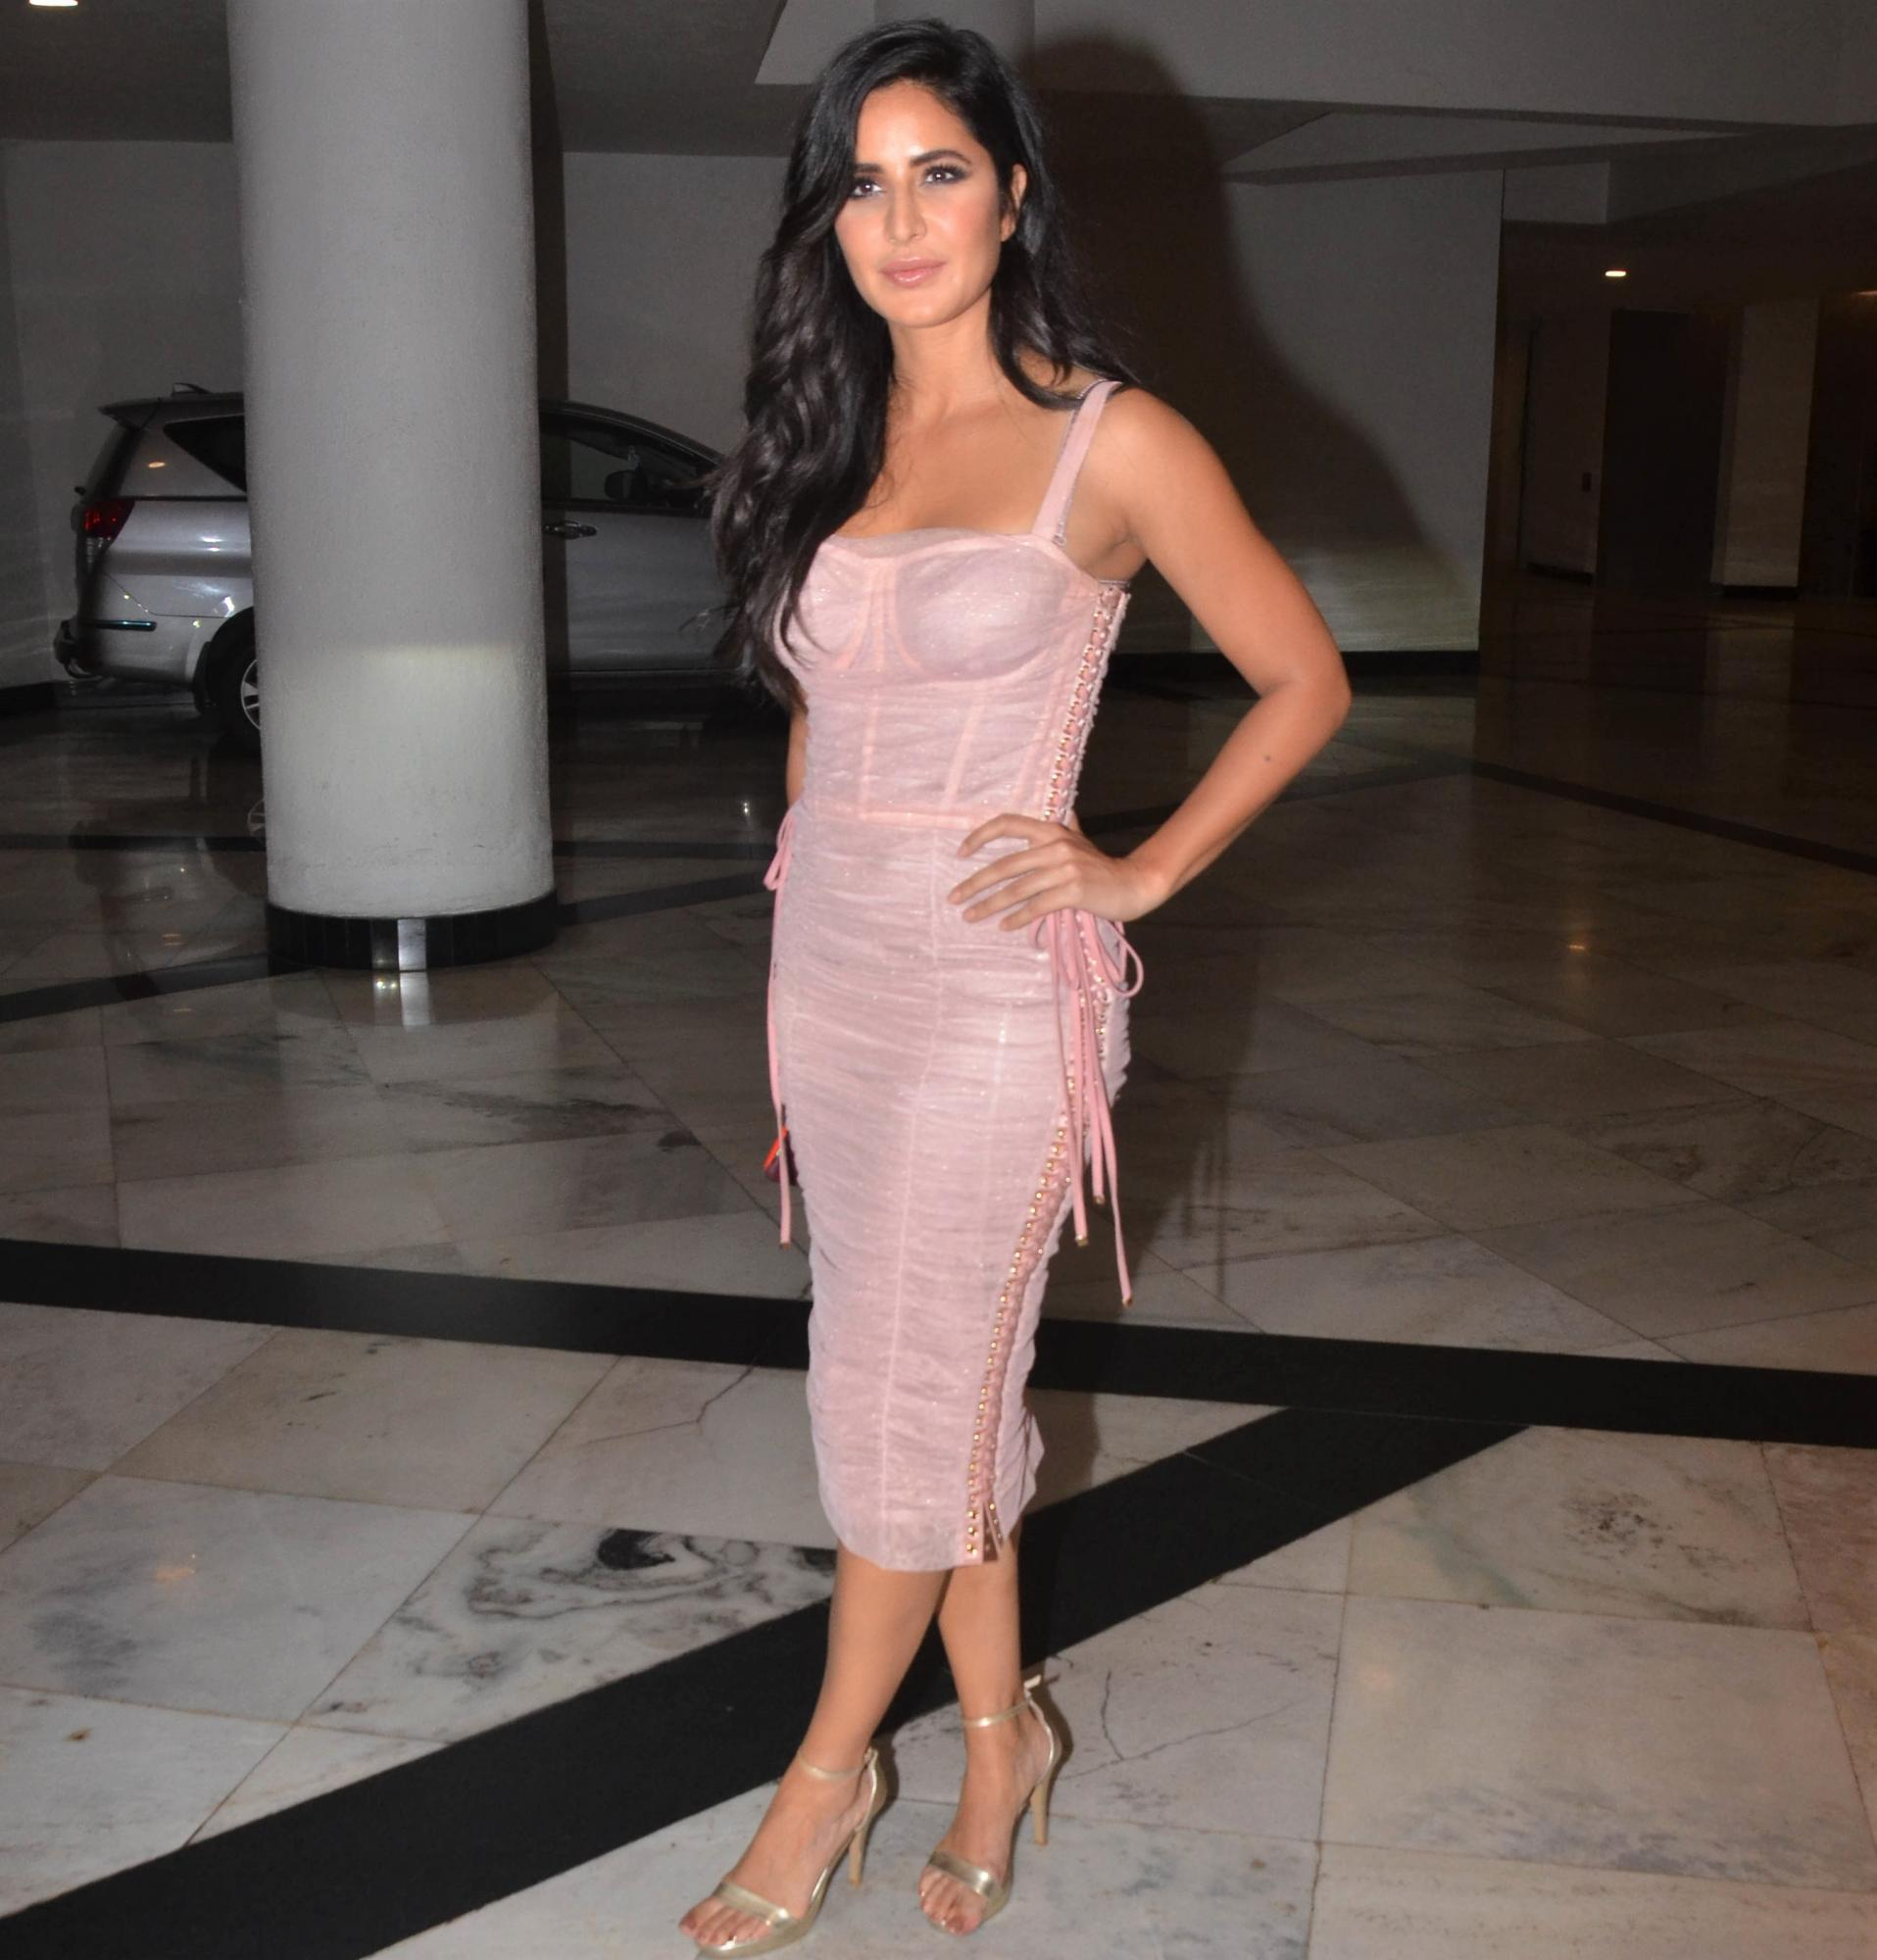 Katrina Kaif and Jacqueline Fernandez Are Bringing Back the 70s Lace-Up Trend